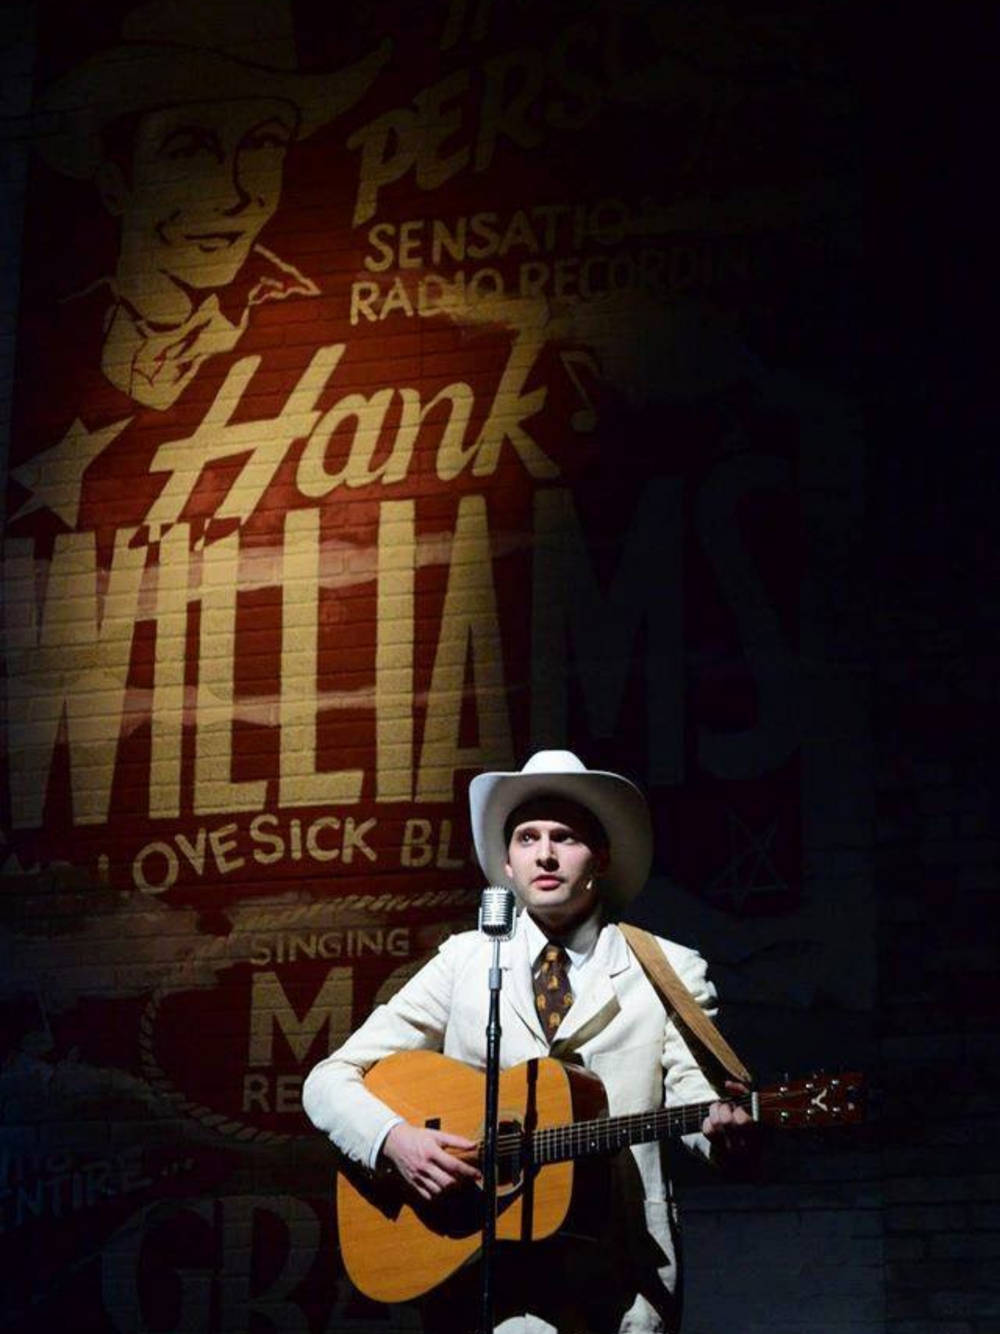 hank-williams-lost-highway-ben-randle-allen-willner-hank13.jpg